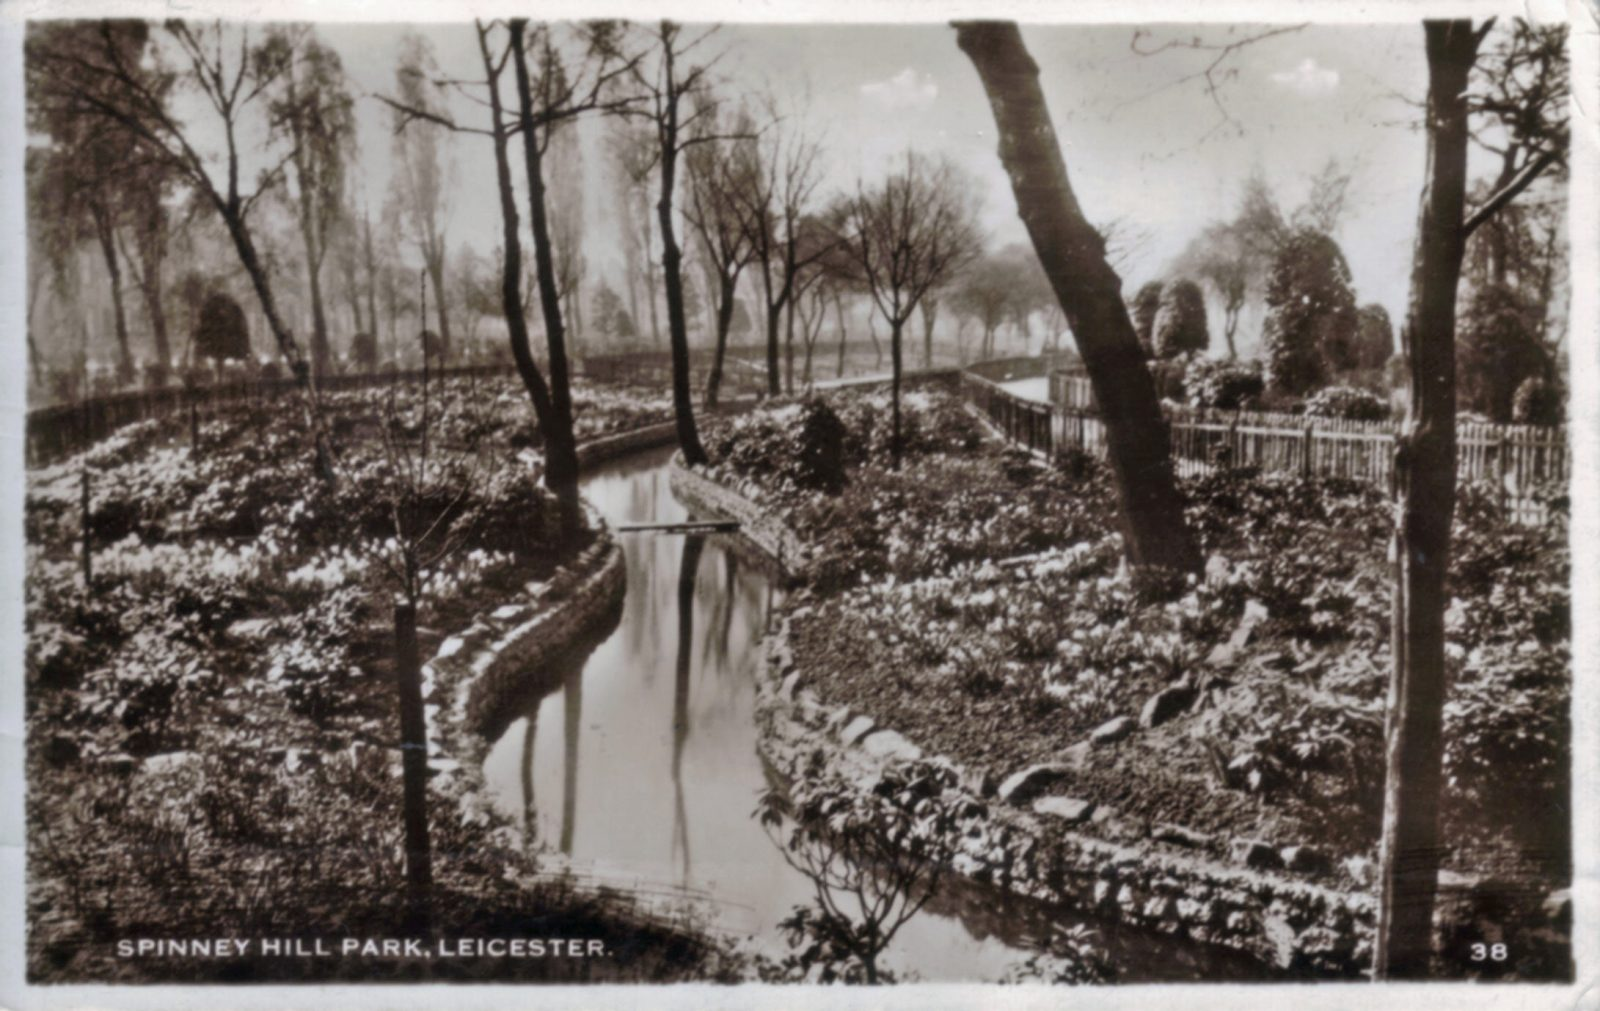 Spinney Hill Park, Leicester. 1921-1940: Stream and informal planting. Franked 1933 (File:1060)